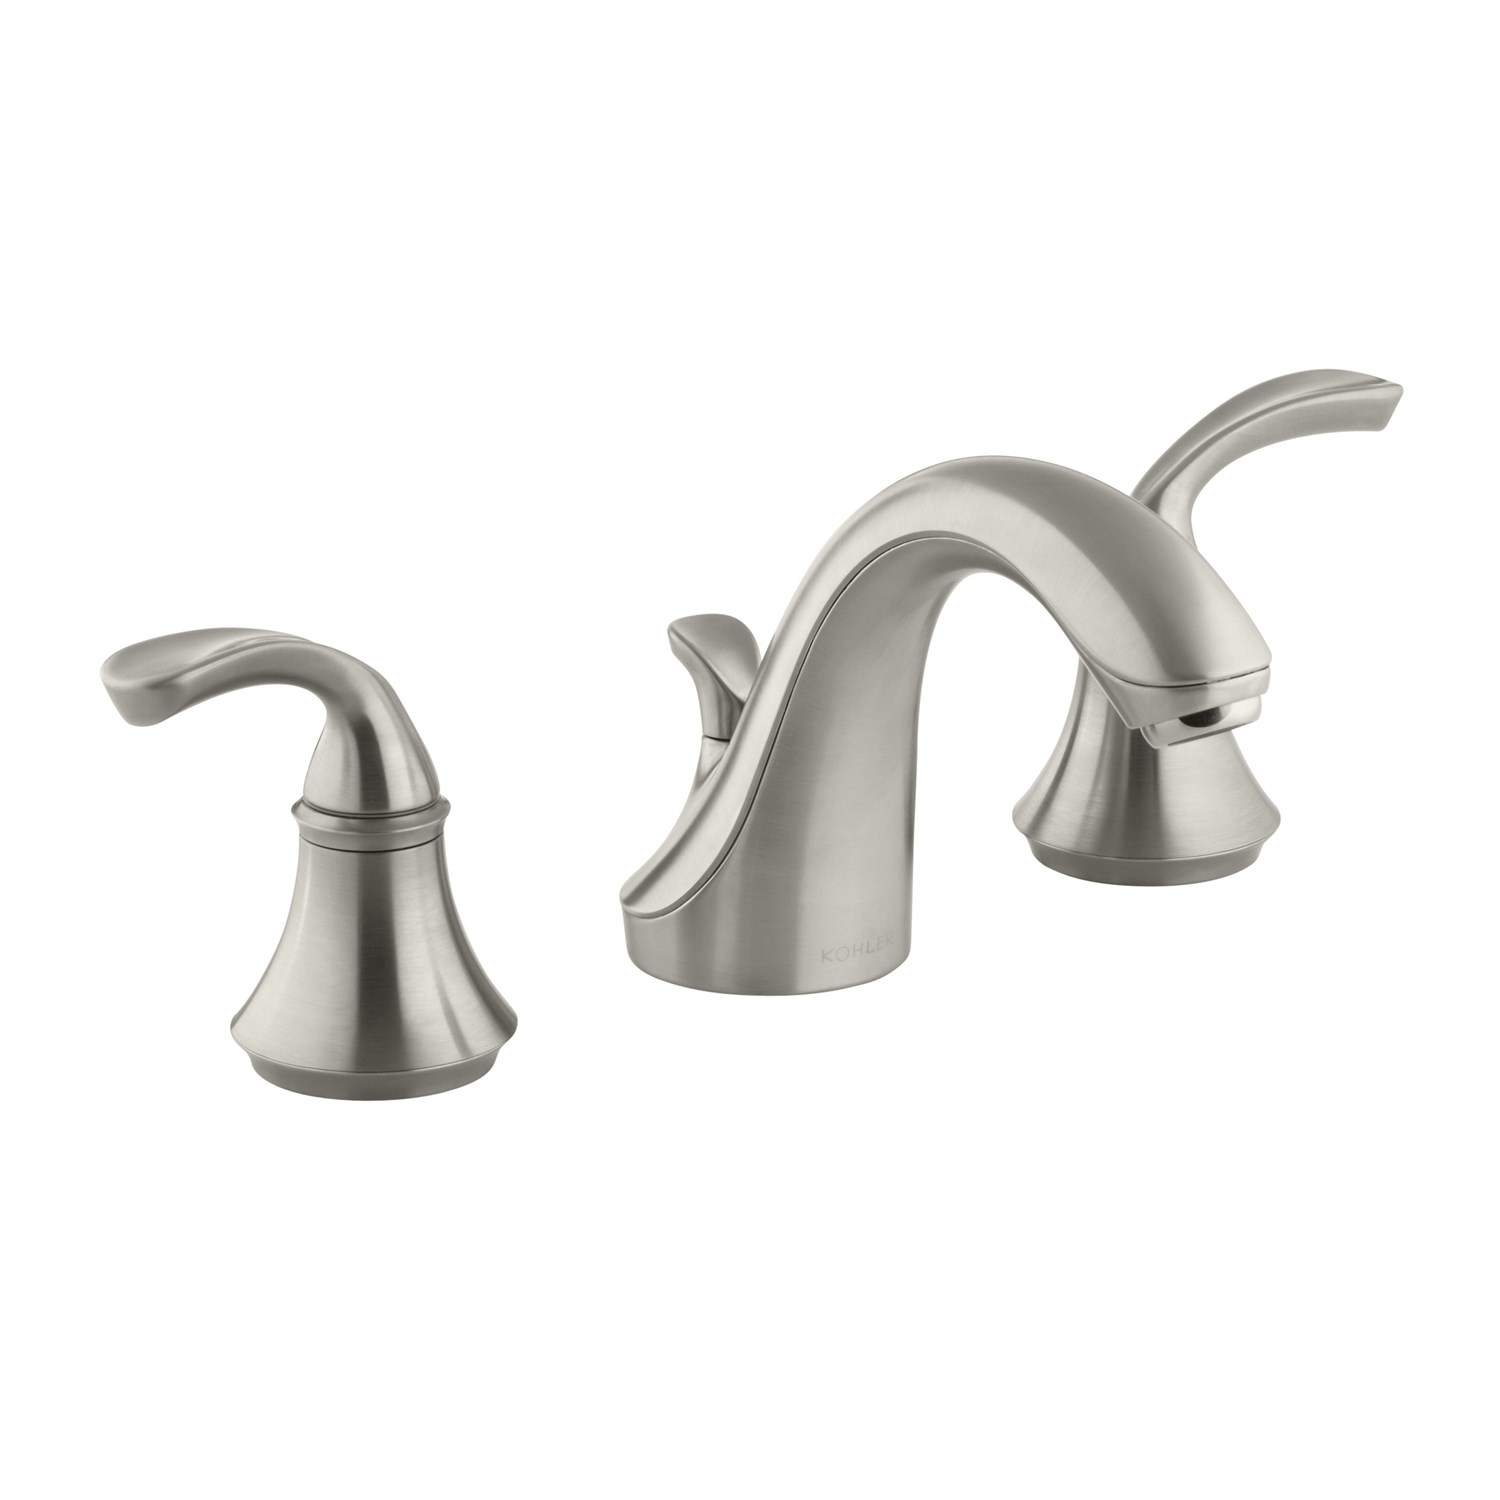 Ideas, kohler revival centerset lavatory faucet kohler revival centerset lavatory faucet top rated bathroom faucets homeclick 1500 x 1500 1  .